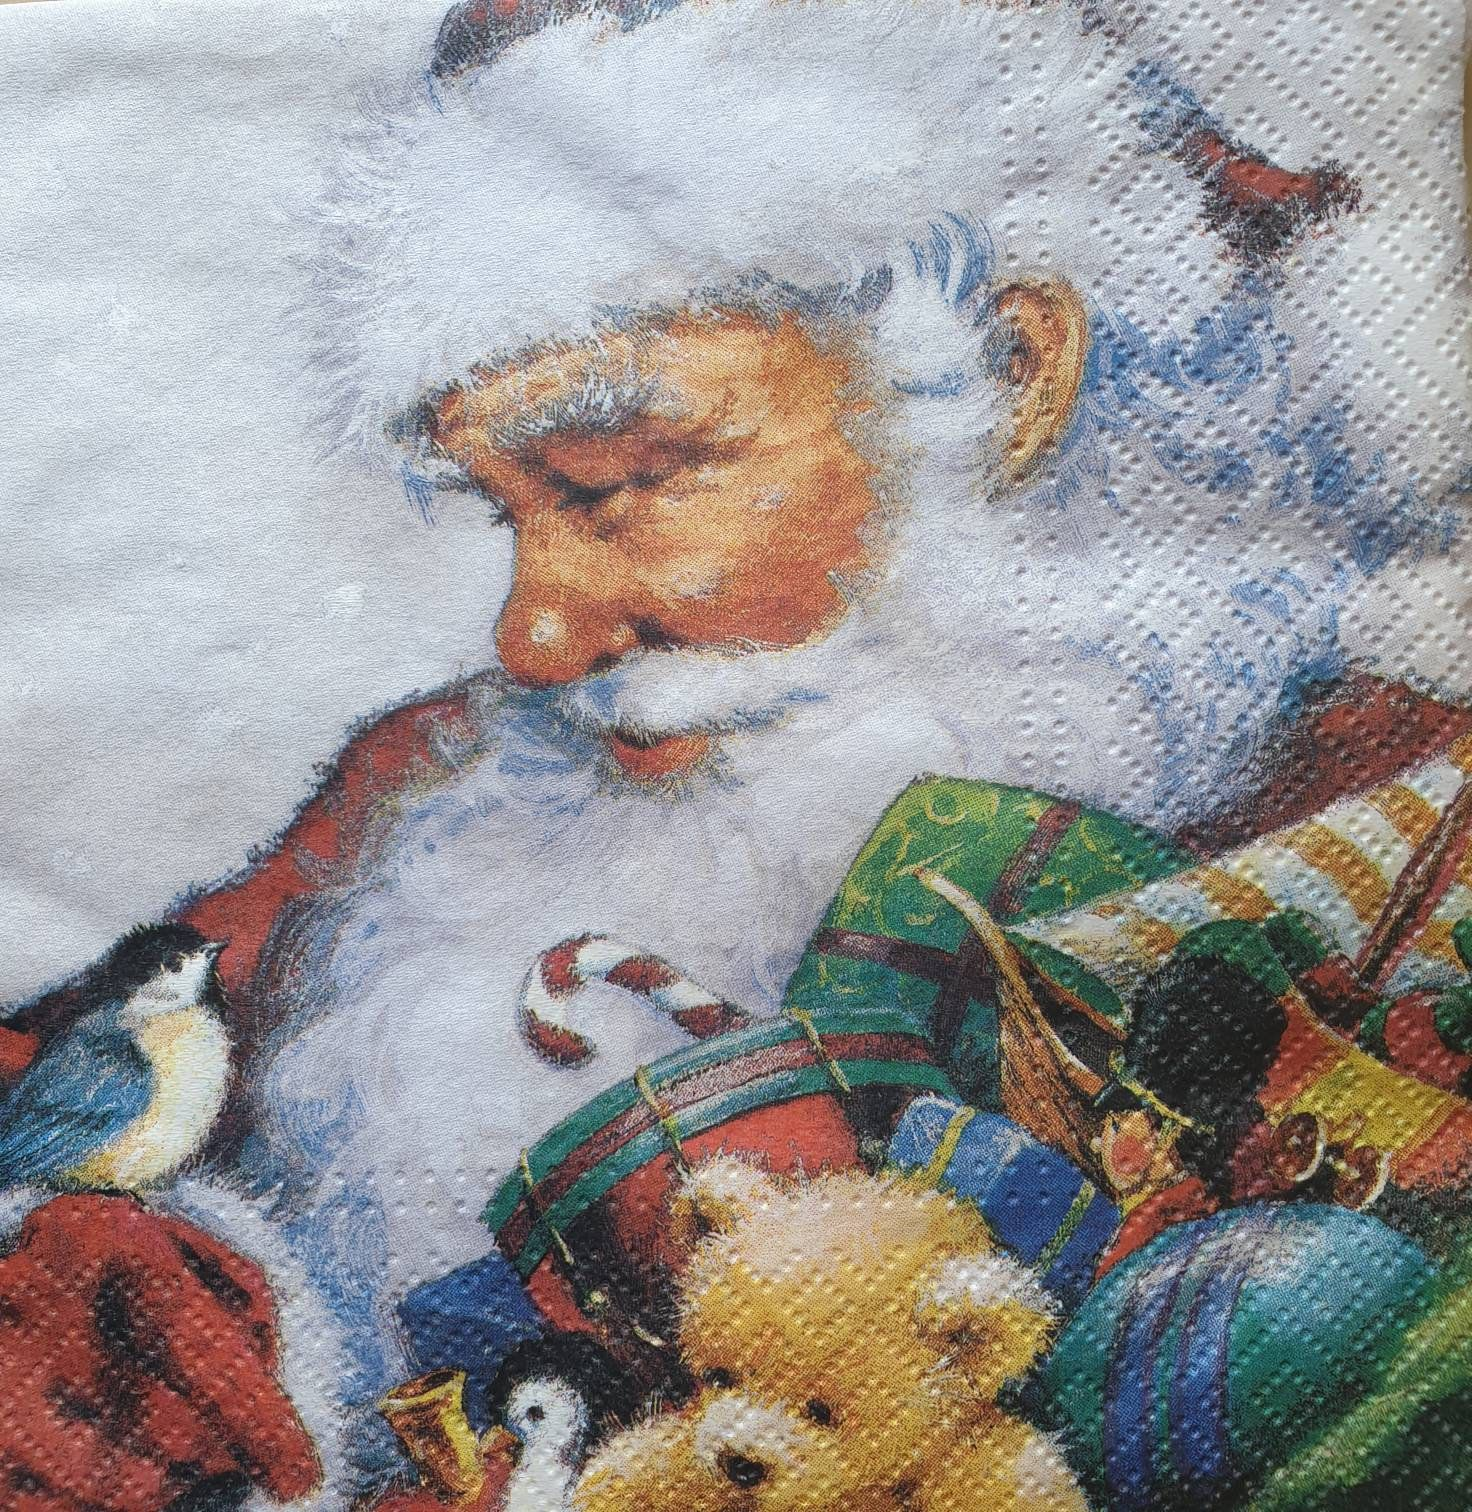 Christmas Napkins set of 5 Decoupage Napkins Paper Christmas crafts supply decoupage Scrapbooking Paper Craft Projects